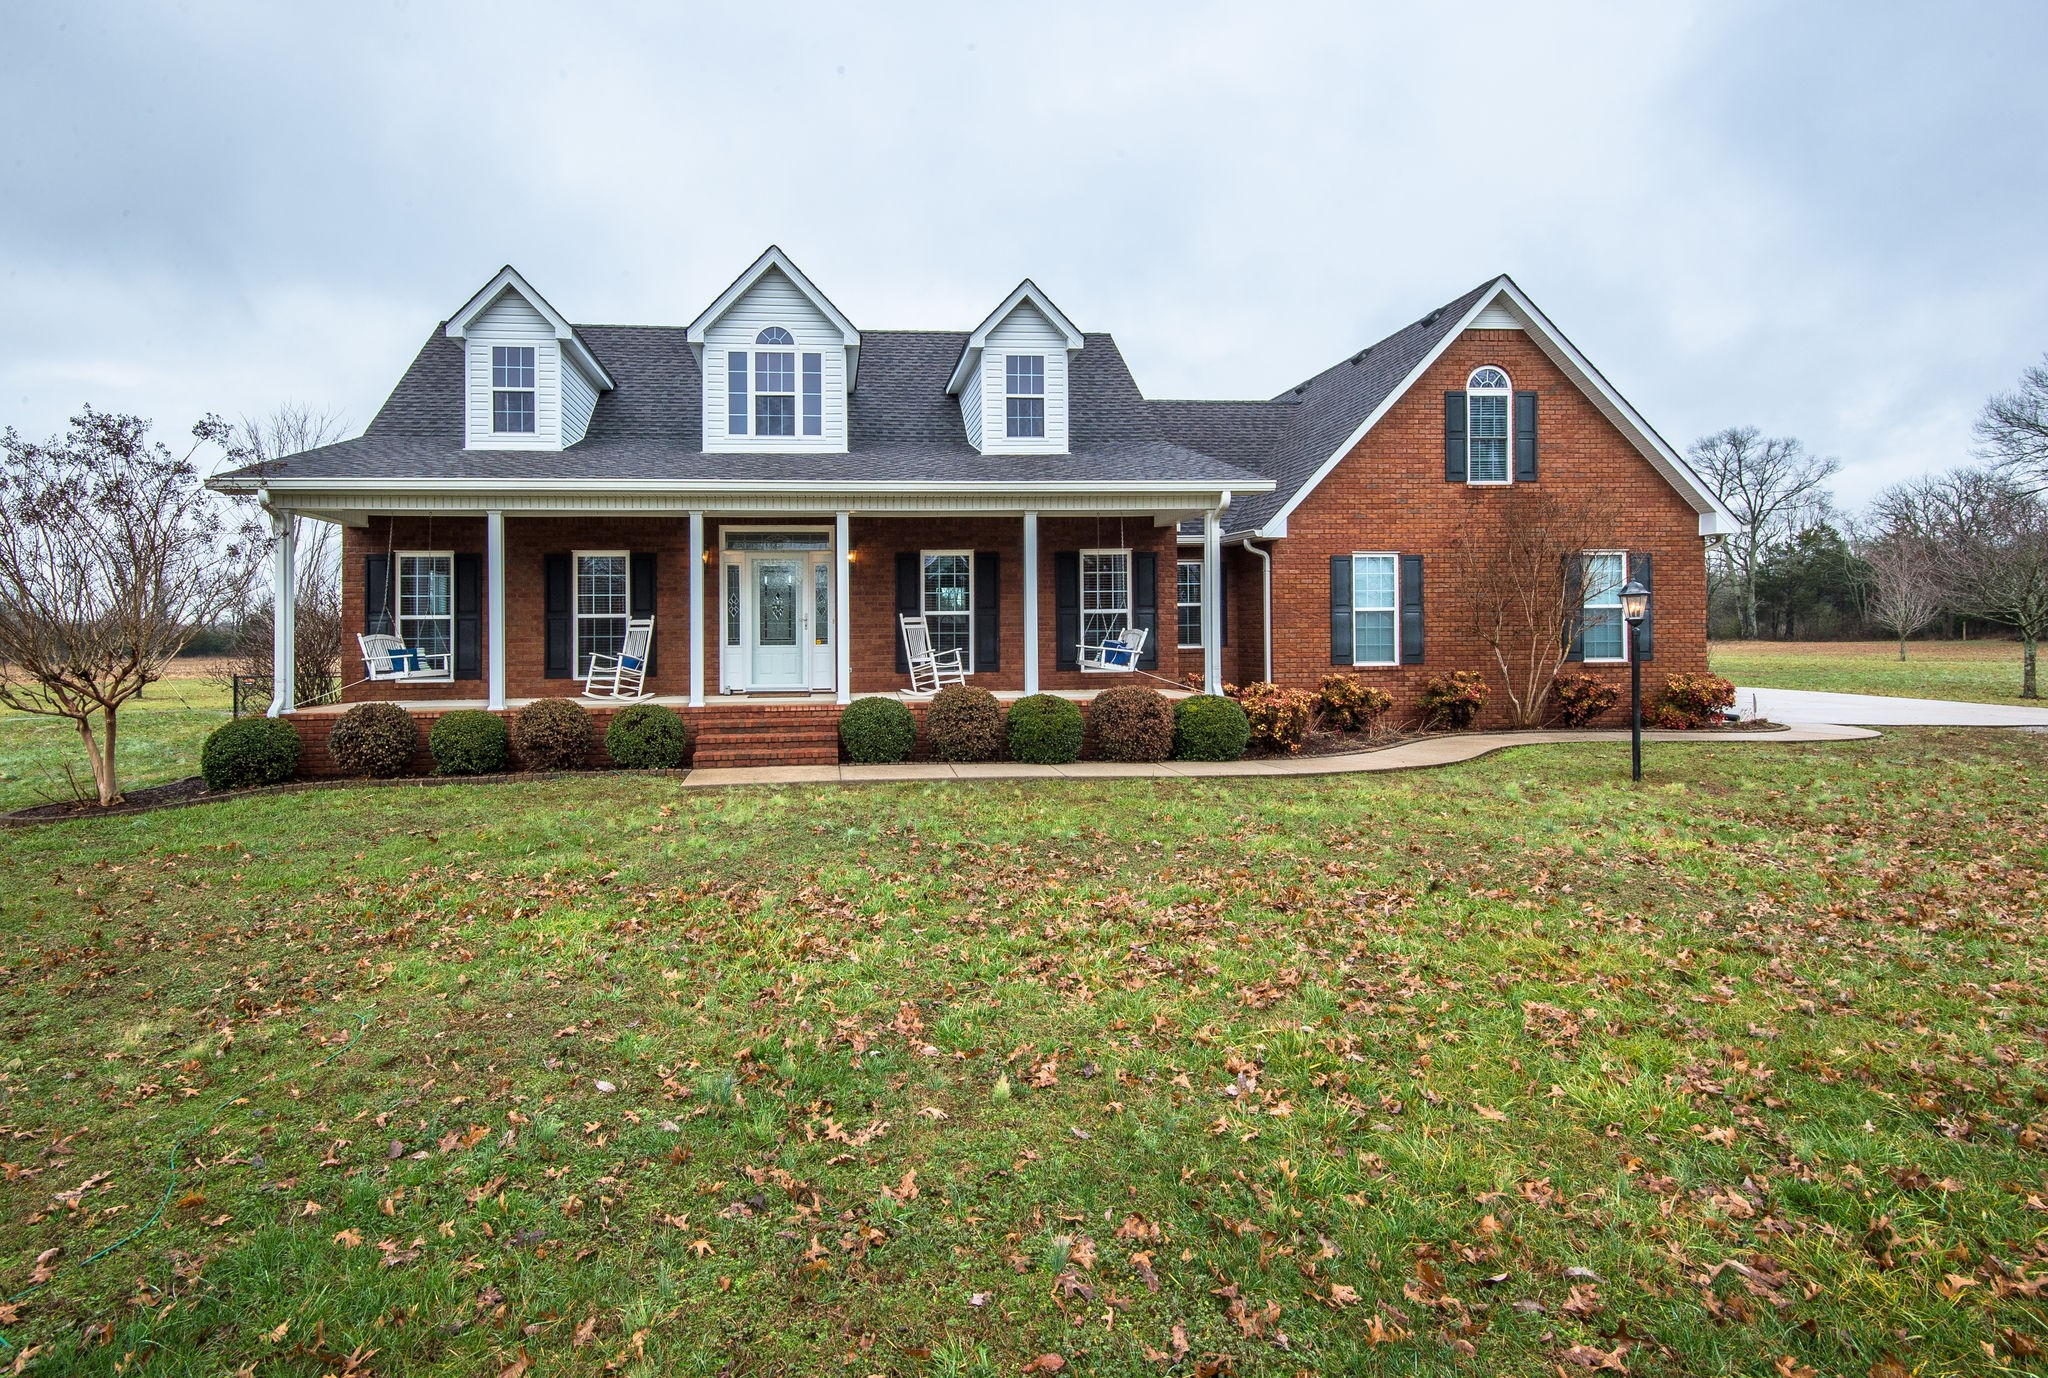 2100 Midland Fosterville Rd, Bell Buckle, TN 37020 - Bell Buckle, TN real estate listing